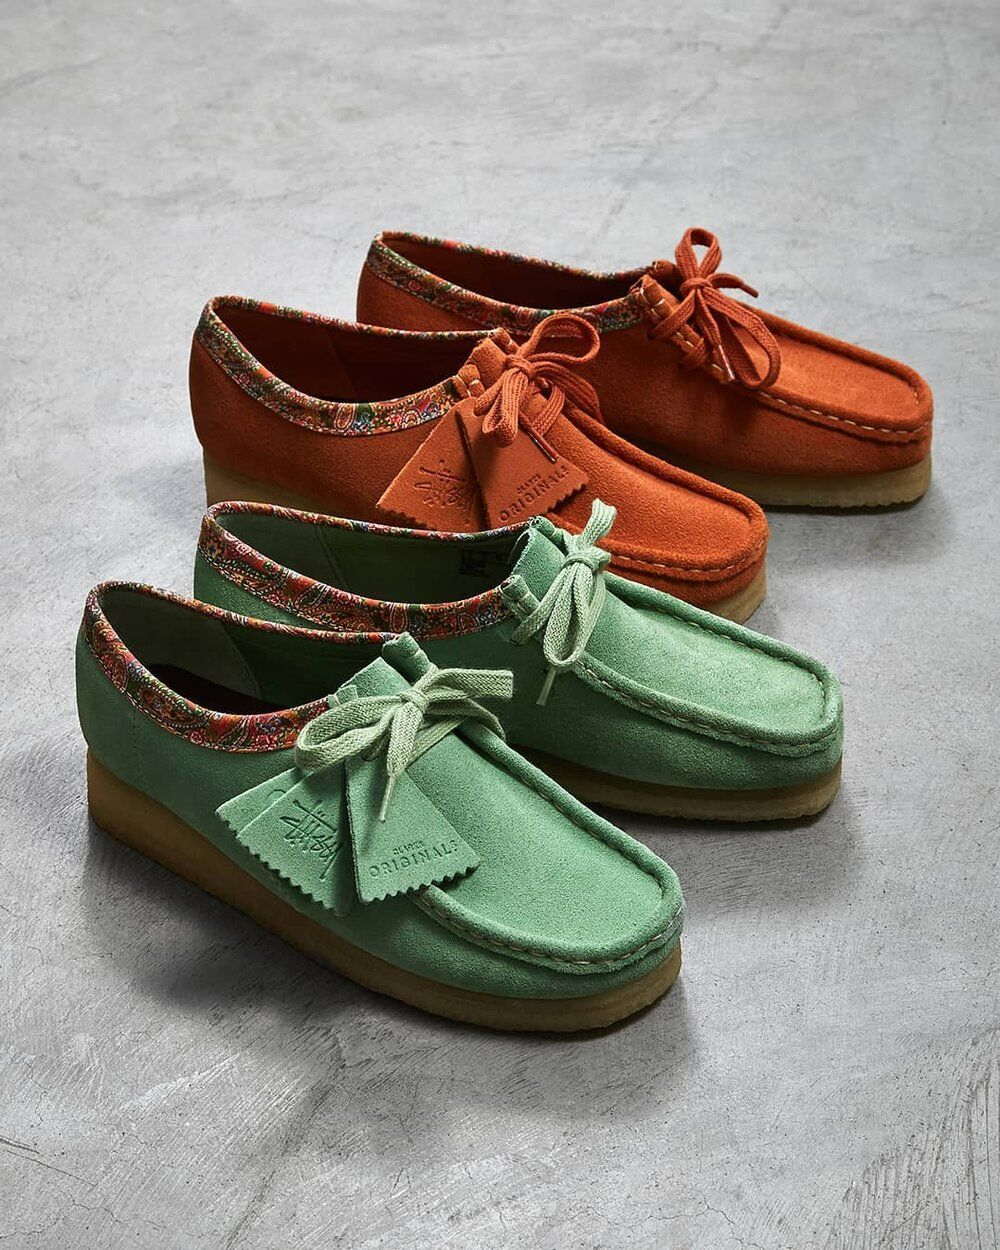 Clarks wallabees outfit